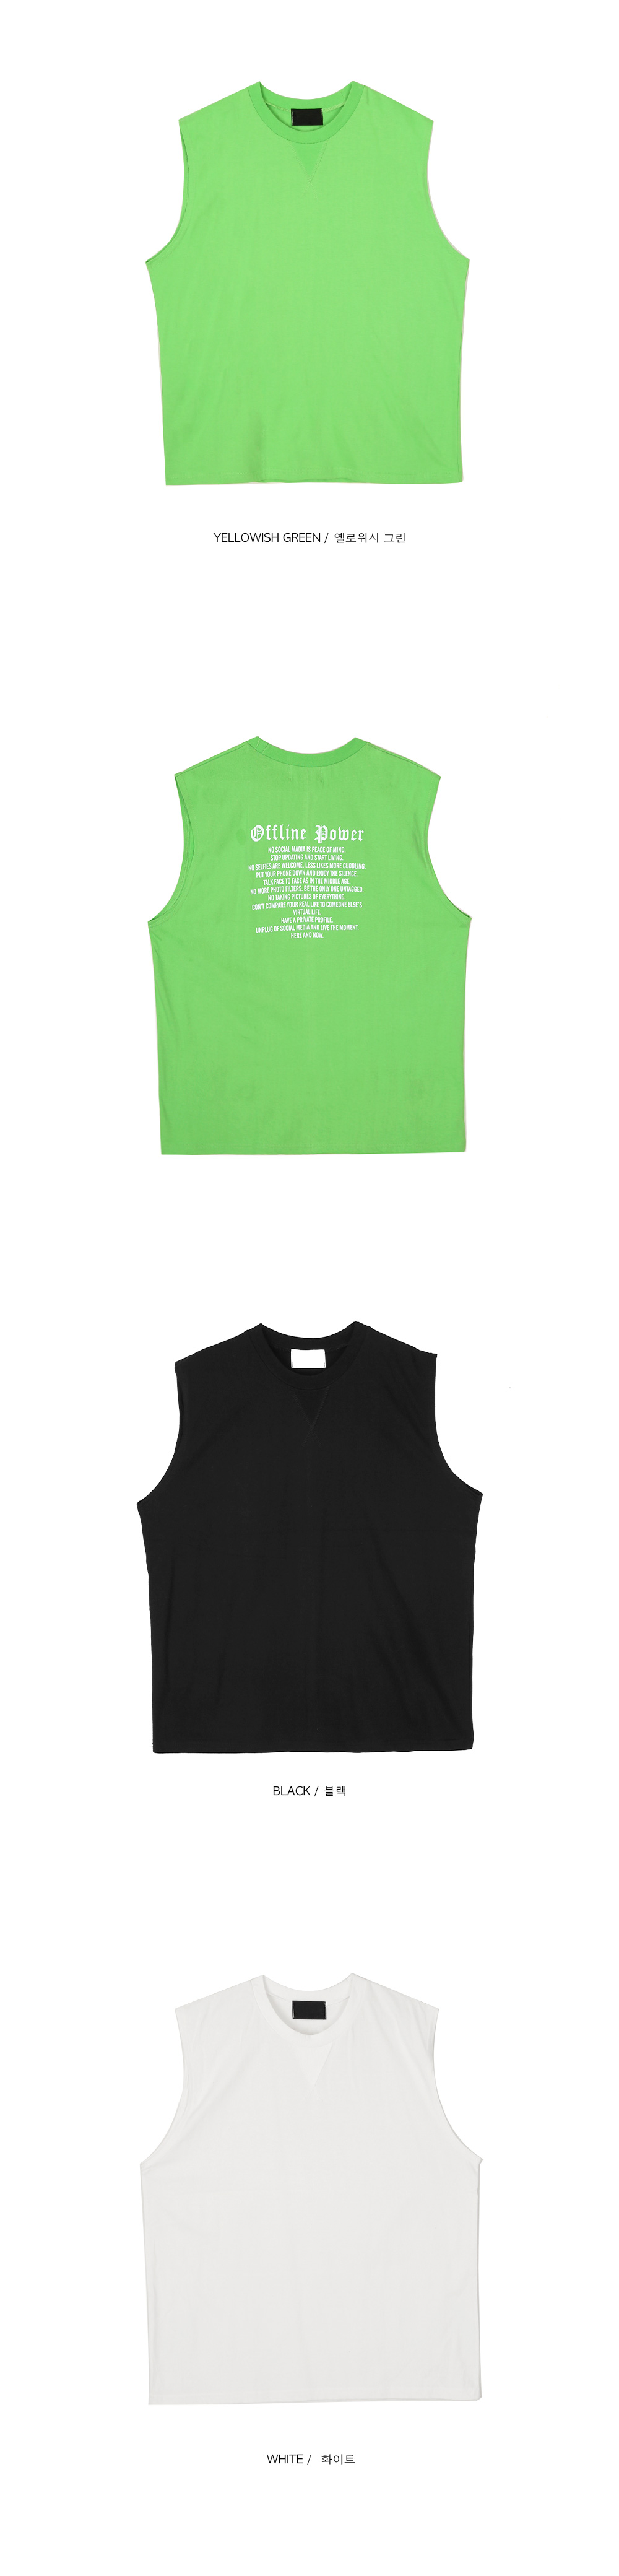 offline power sleeveless - men